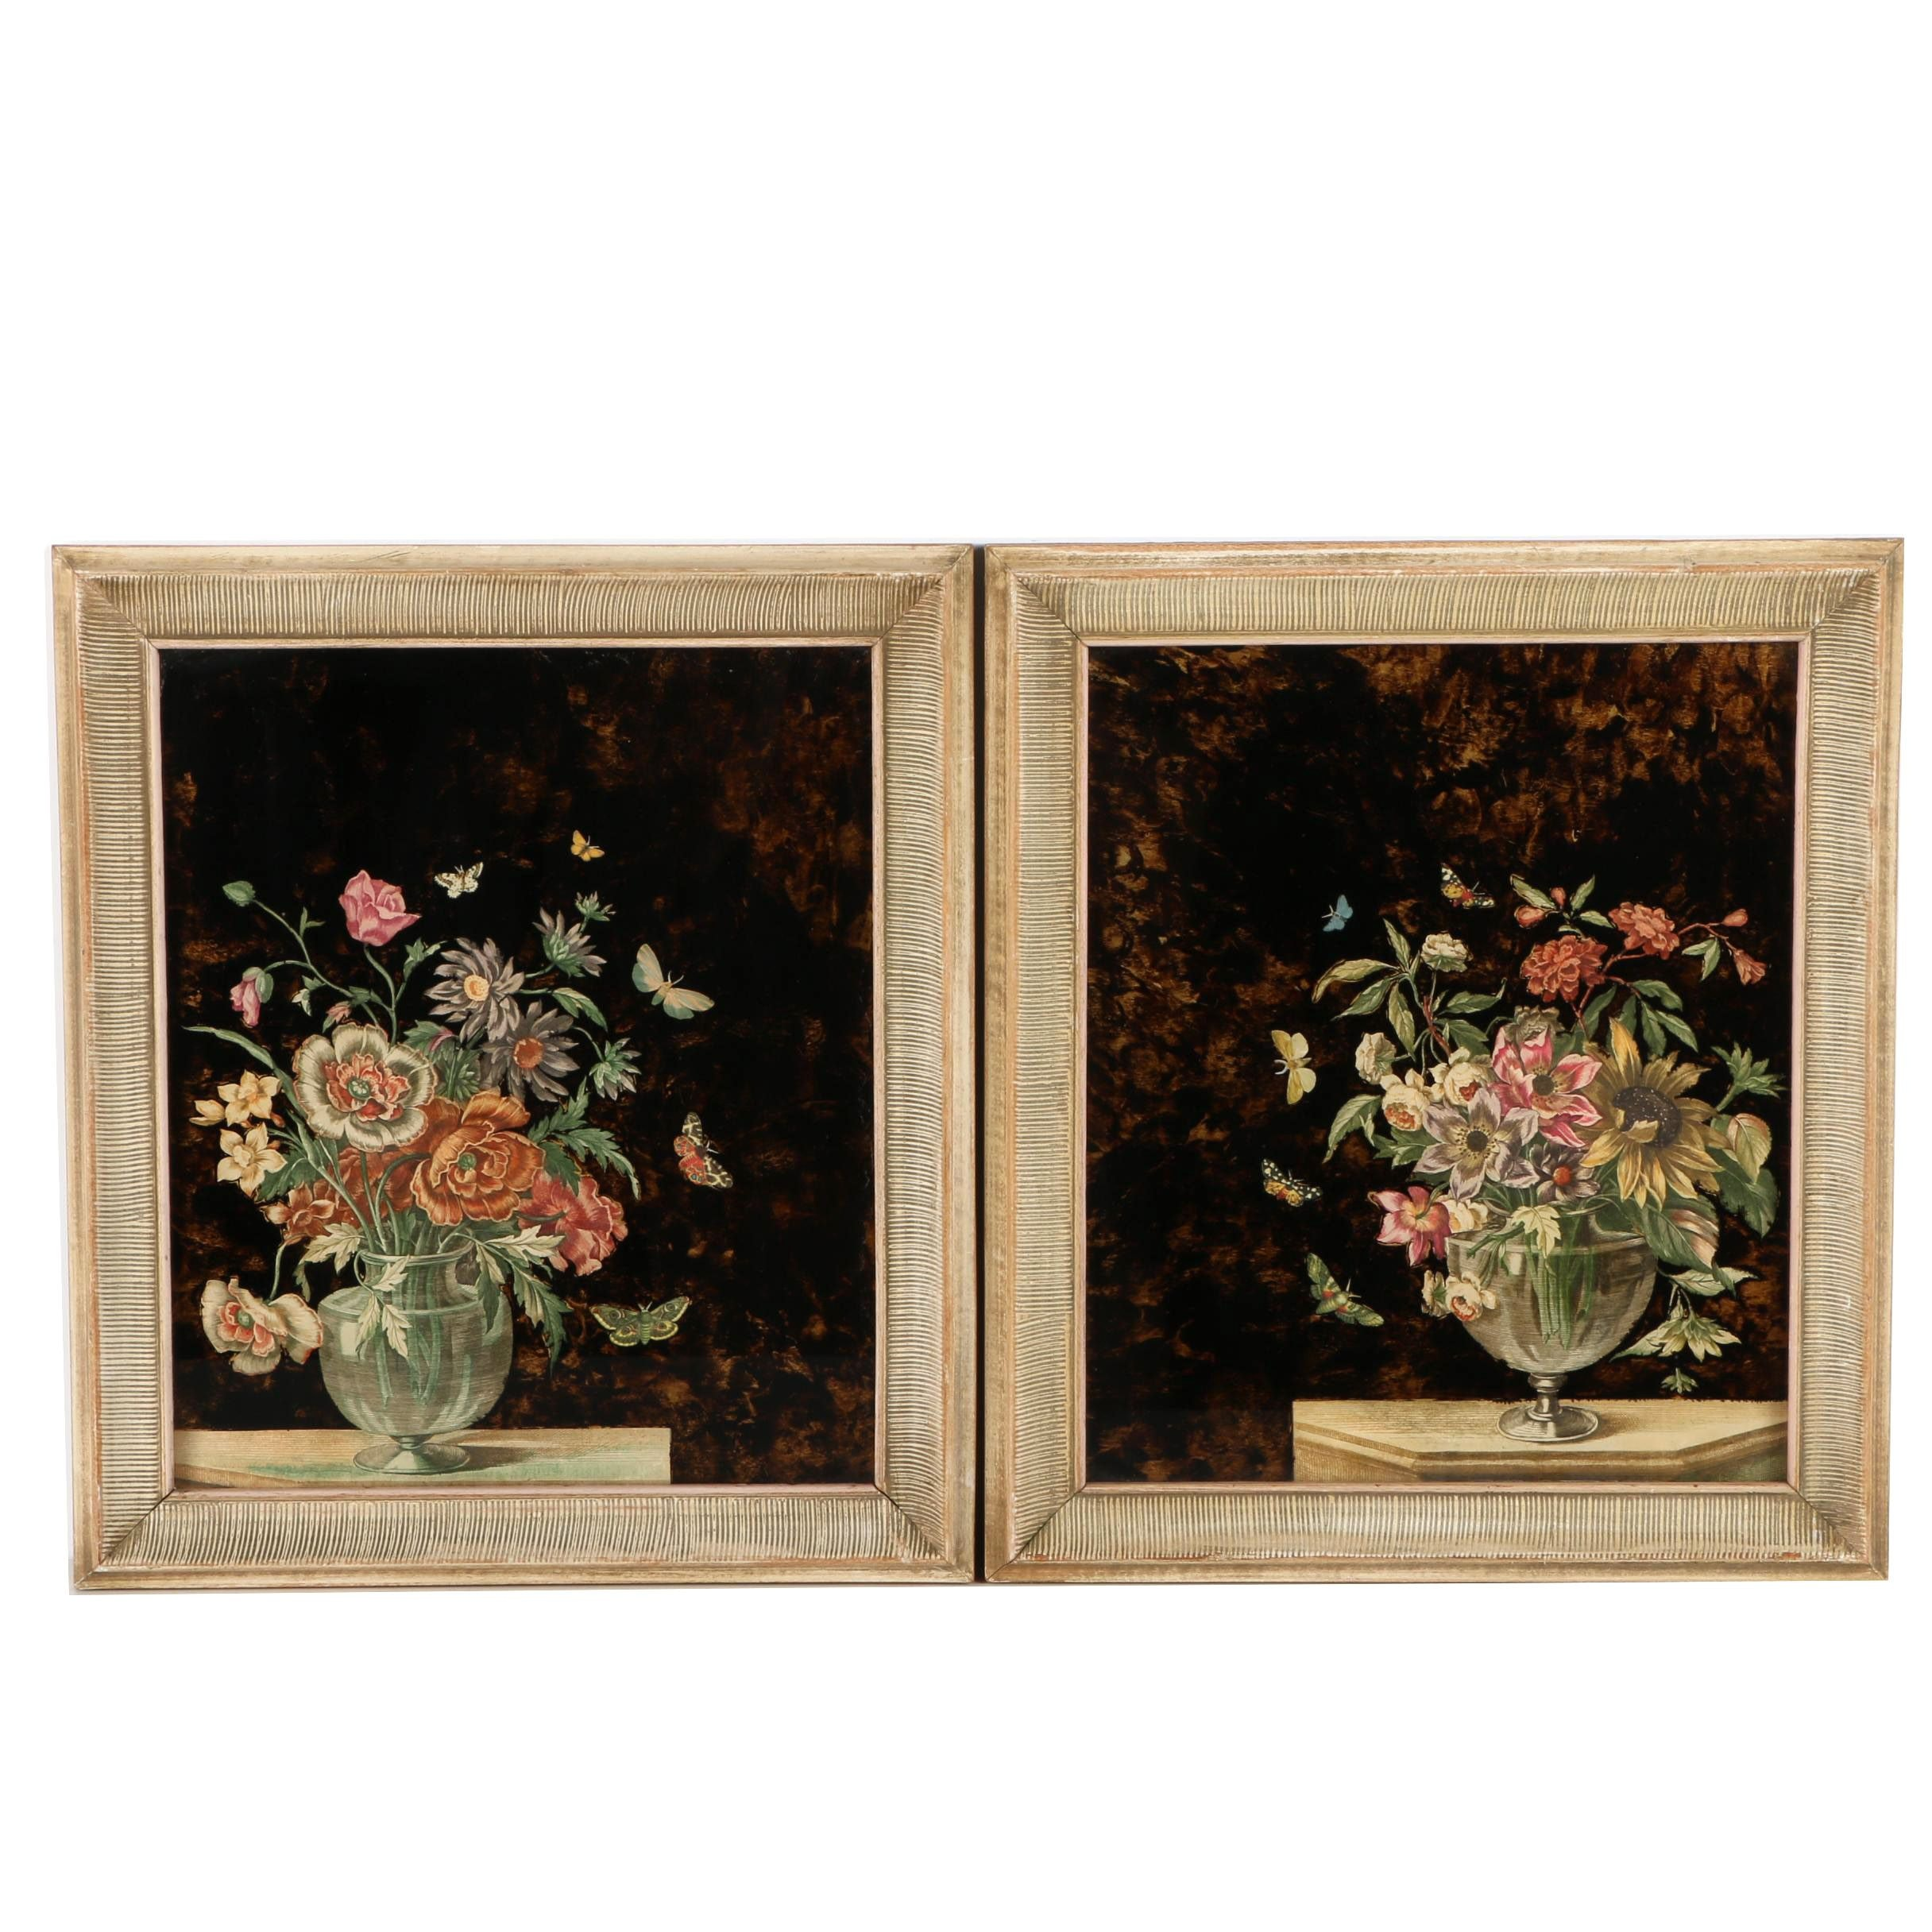 Pair of Offset Lithographs on Paper of Floral Still Life Scenes